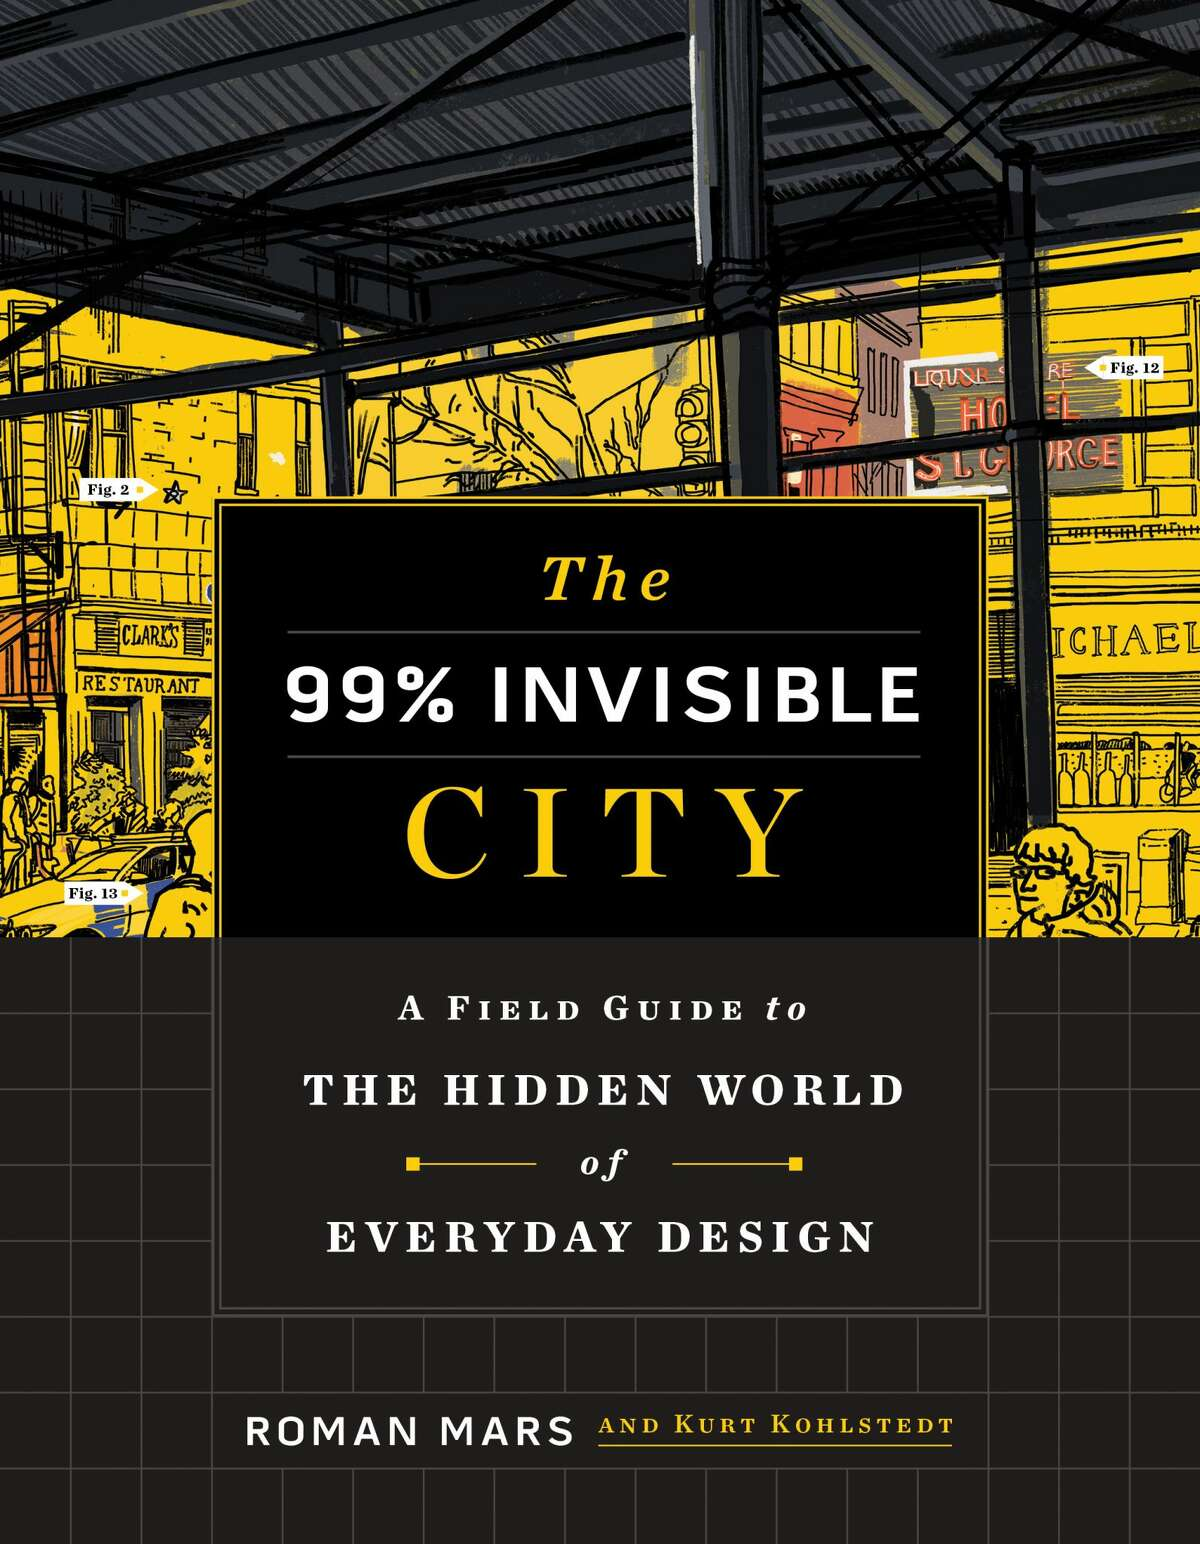 Roman Mars is the co-author of The 99% Invisible City: A Field Guide to the Hidden World of Everyday Design.